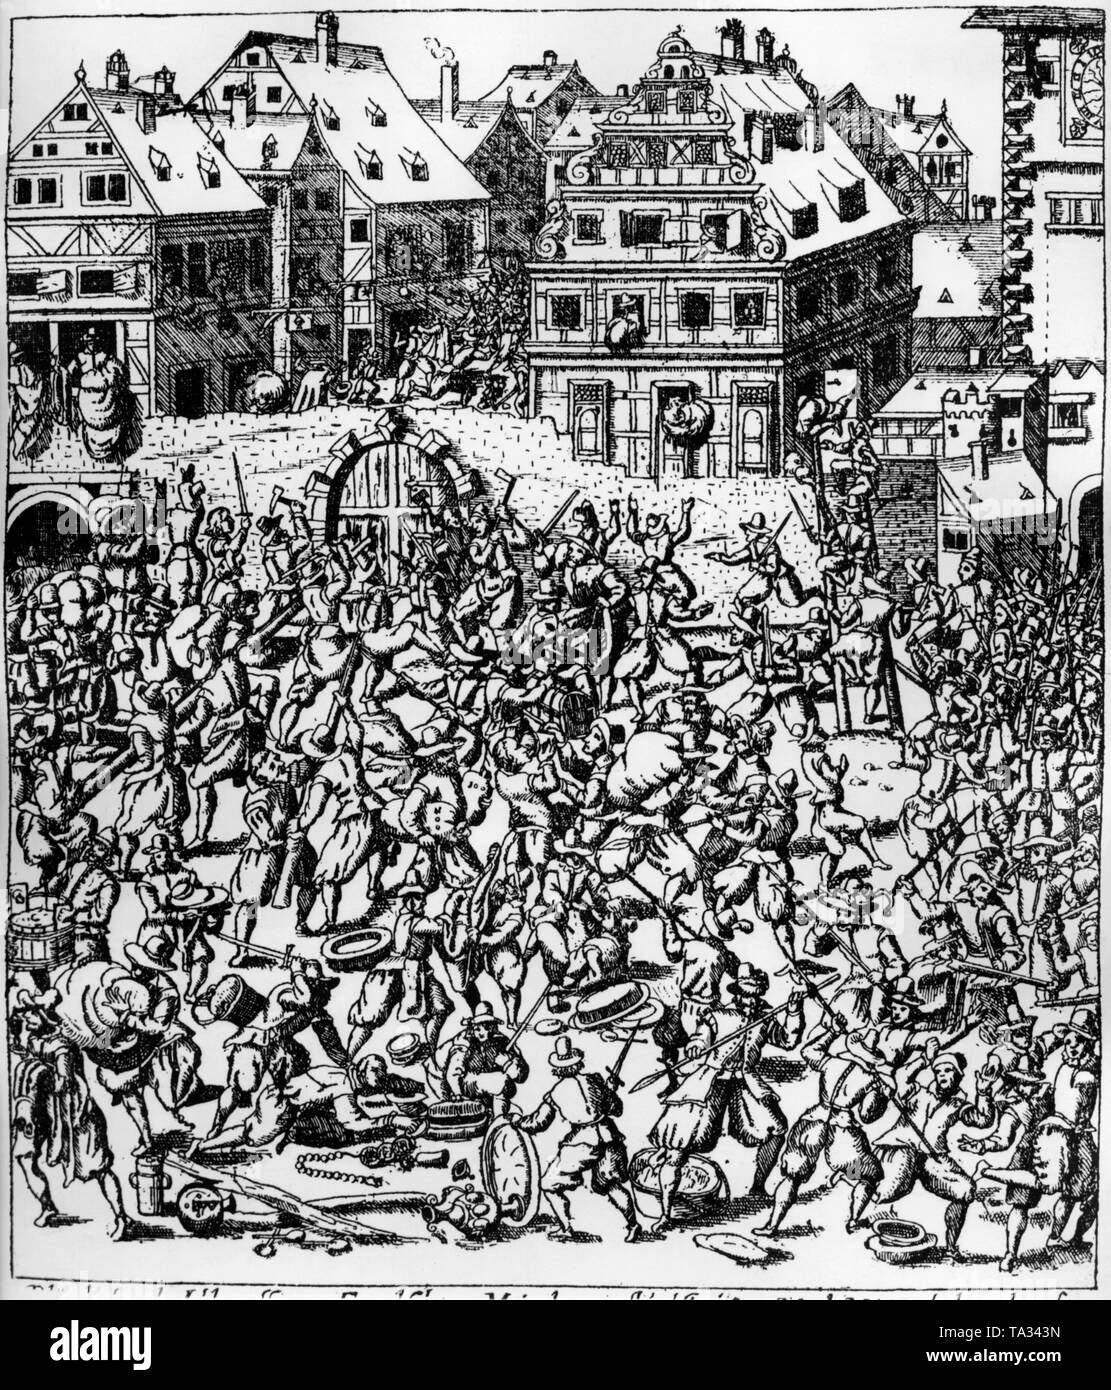 This copper engraving by Georg Keller shows the plundering of the Judengasse (Jews' Lane)  in Frankfurt. The engraving is located in the Kupferstichkabinett in Munich. - Stock Image